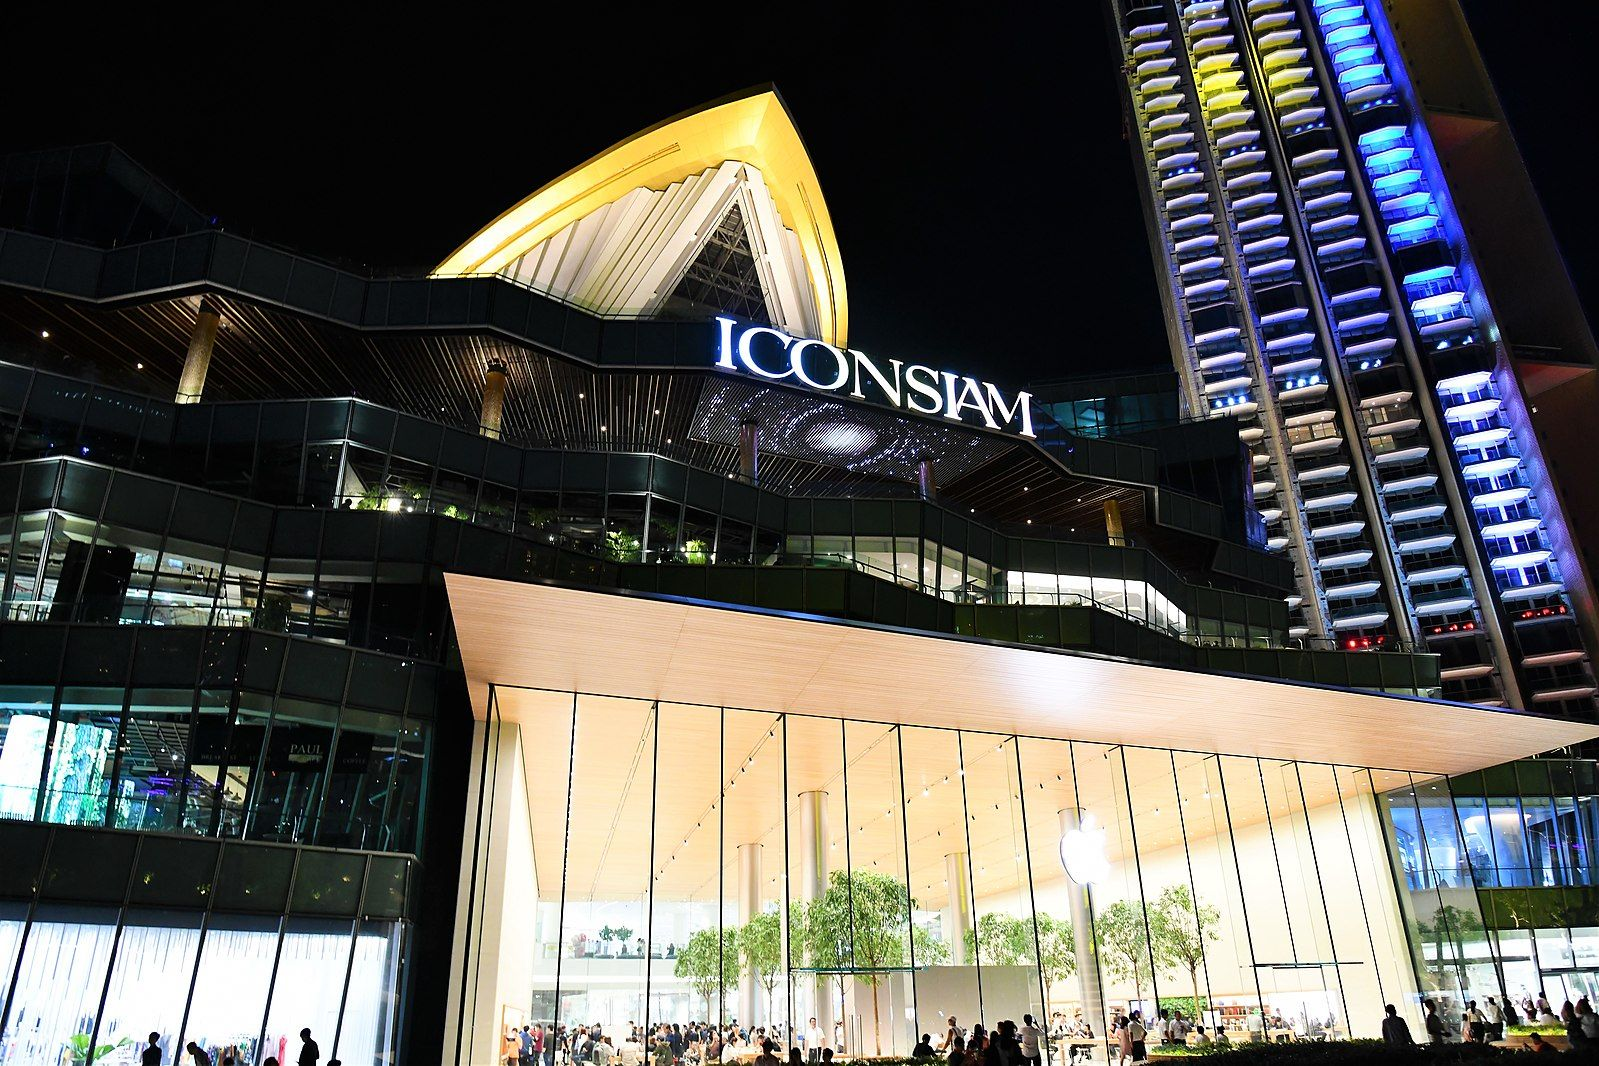 ICON Siam Bangkok's Latest Launch Of Shopping Mall